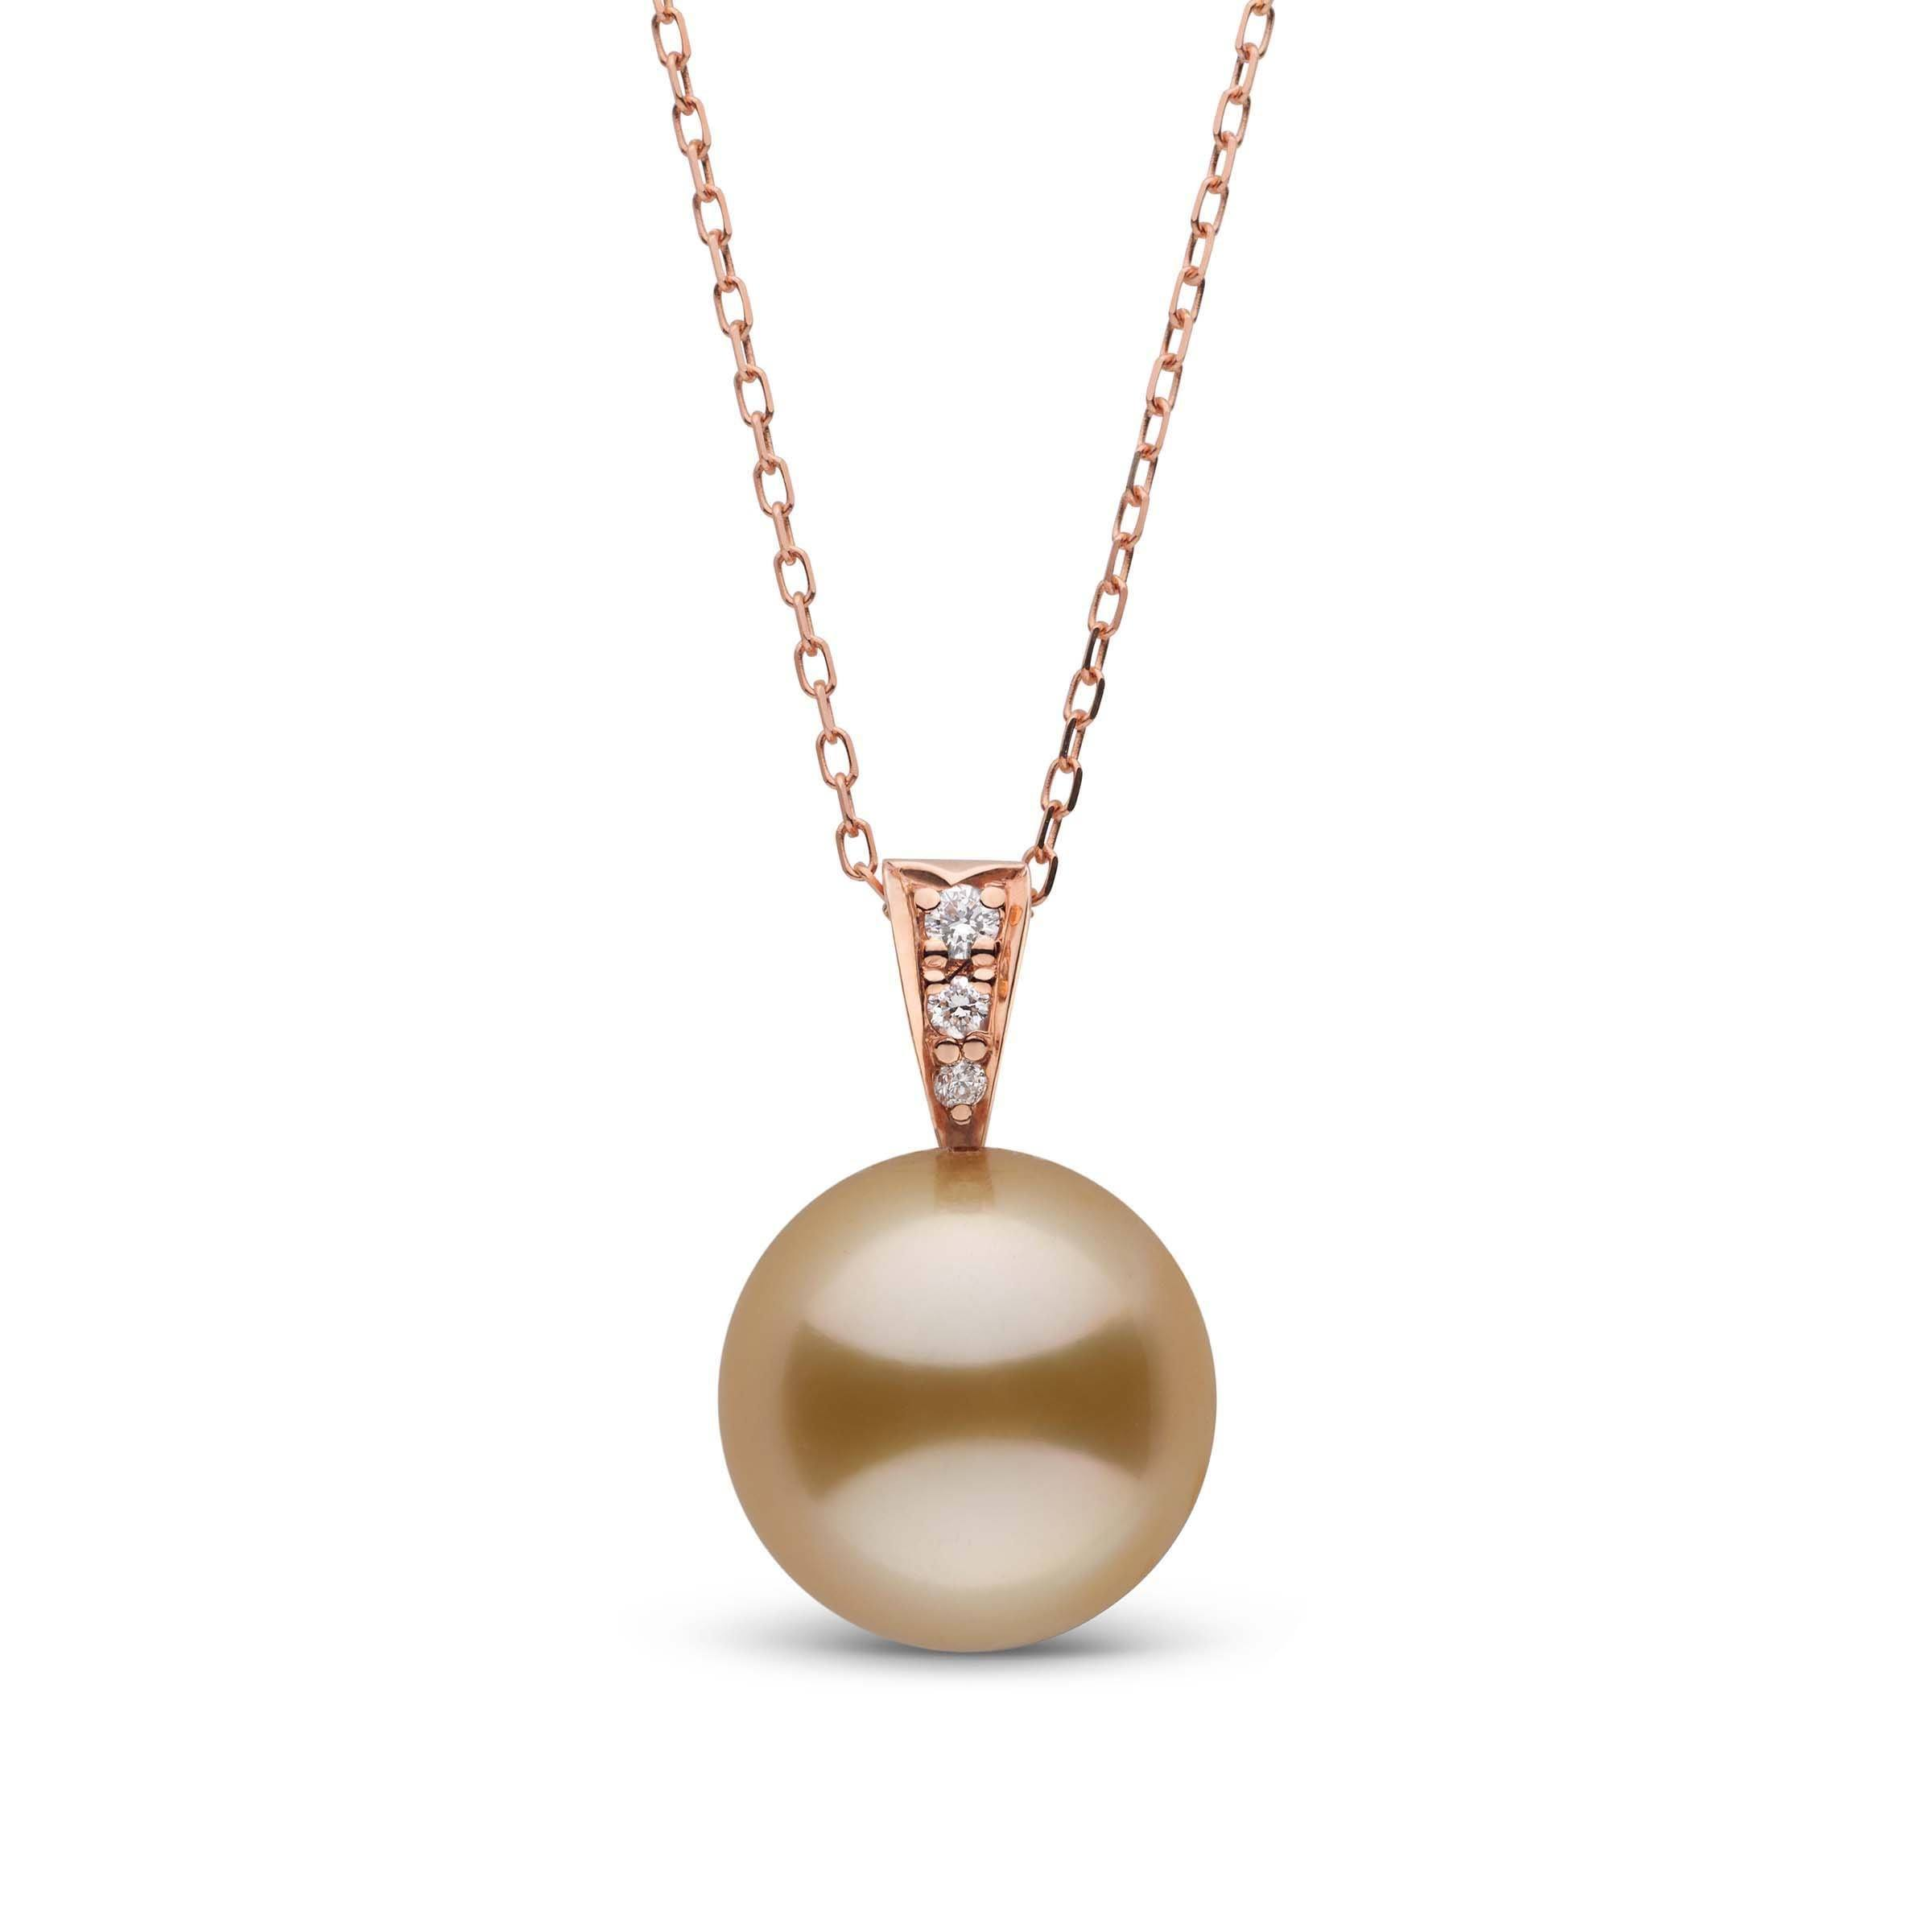 Desire Collection Golden 11.0-12.0 mm South Sea Pearl and Diamond Pendant